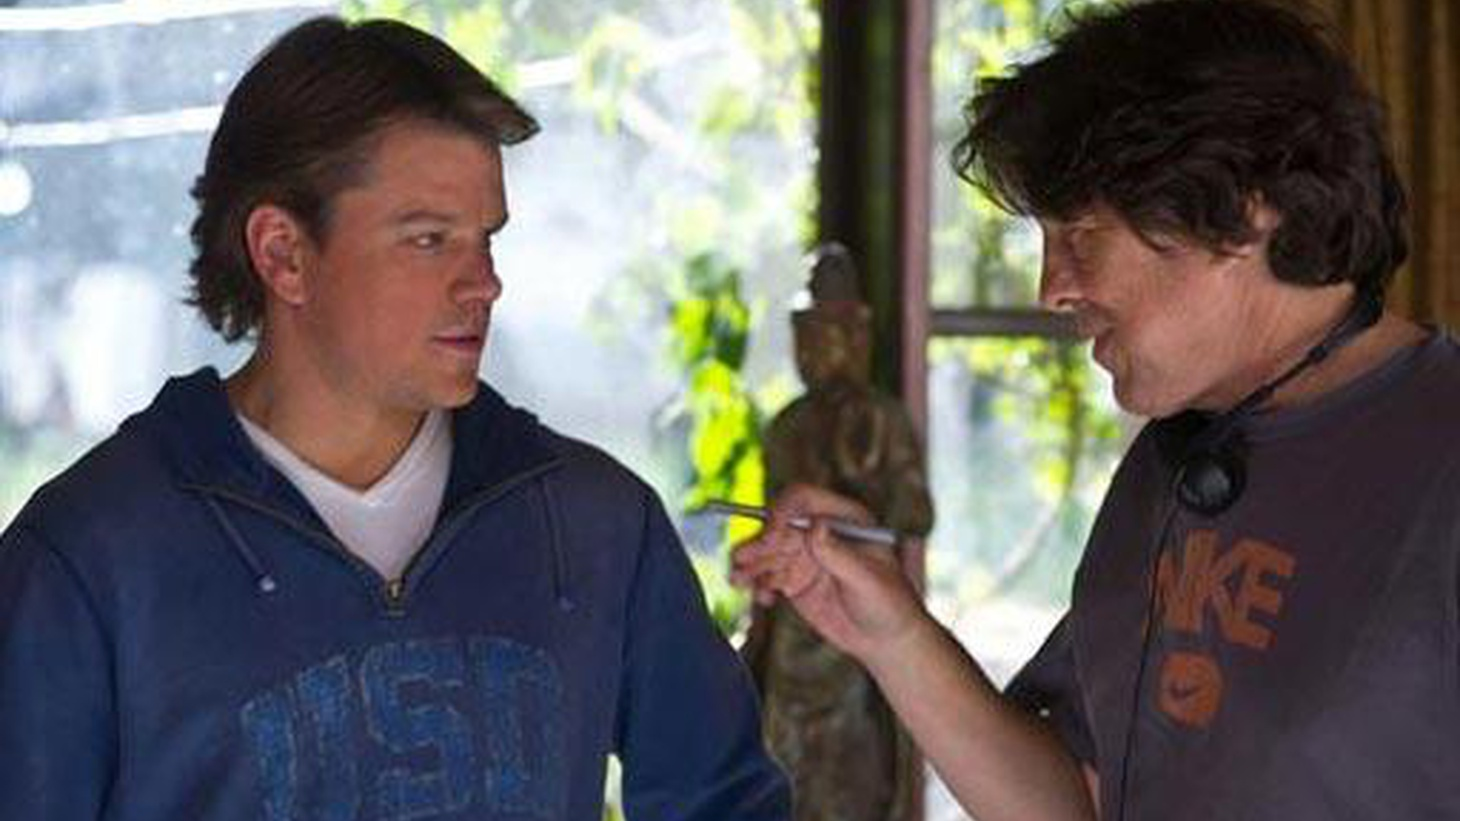 Matt Damon on how director Cameron Crowe wooed him to star in We Bought a Zoo, the challenges of being a really big star and why he's ready to direct.